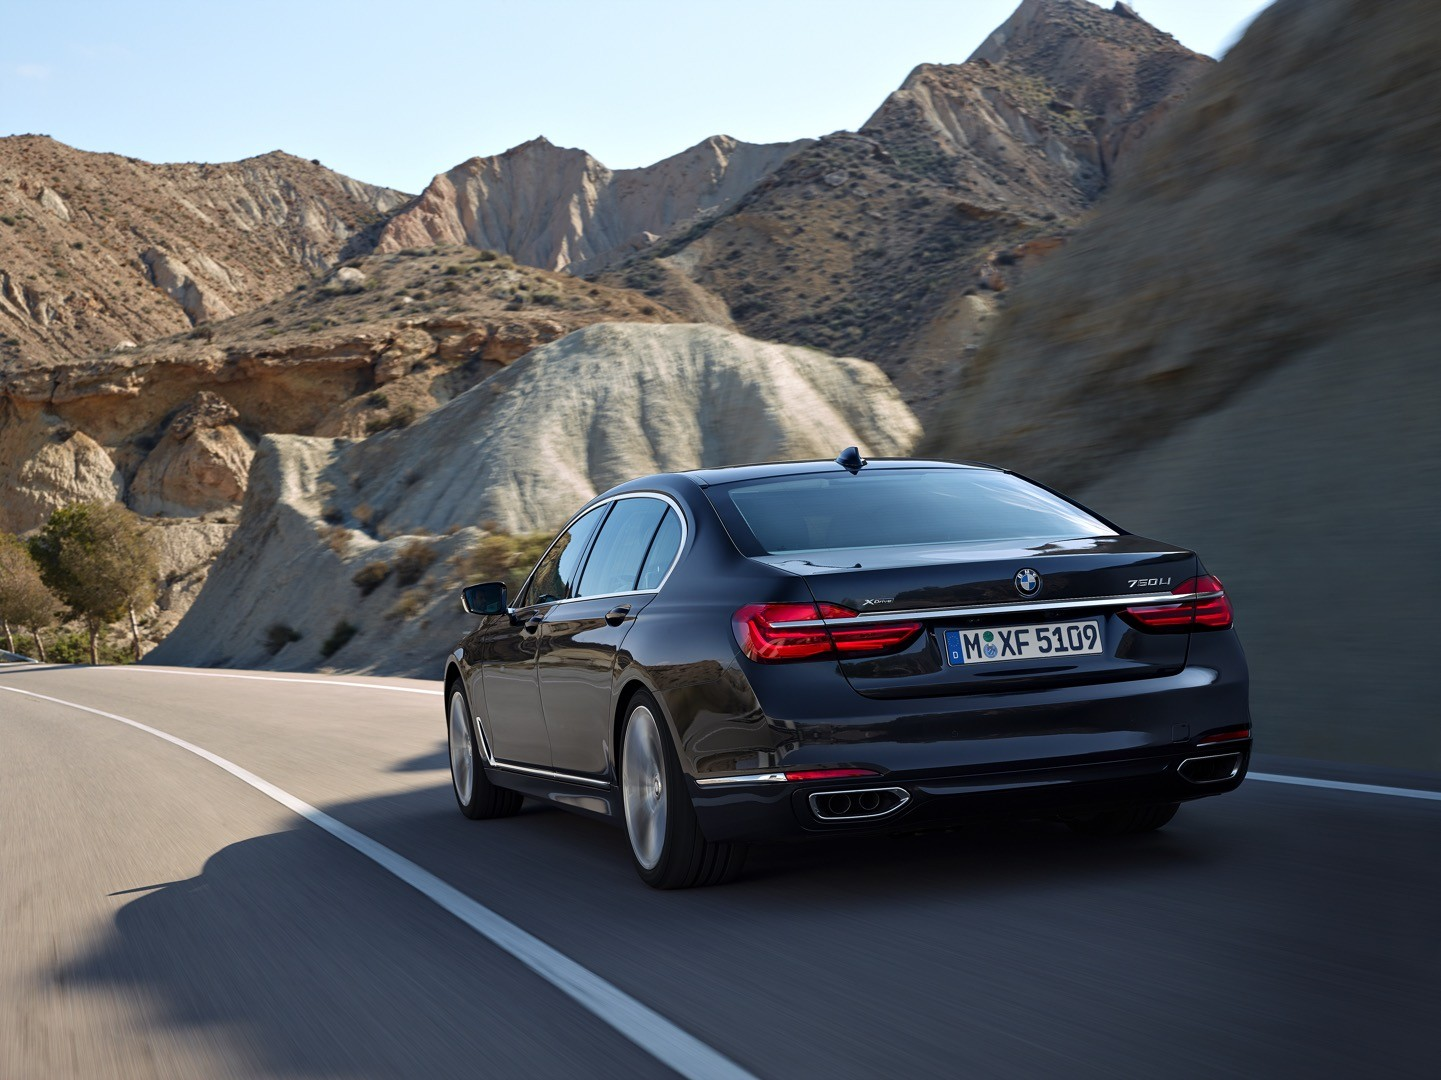 2016-bmw-7-series-finally-officially-unveiled-the-good-stuffs-inside-photo-gallery_9